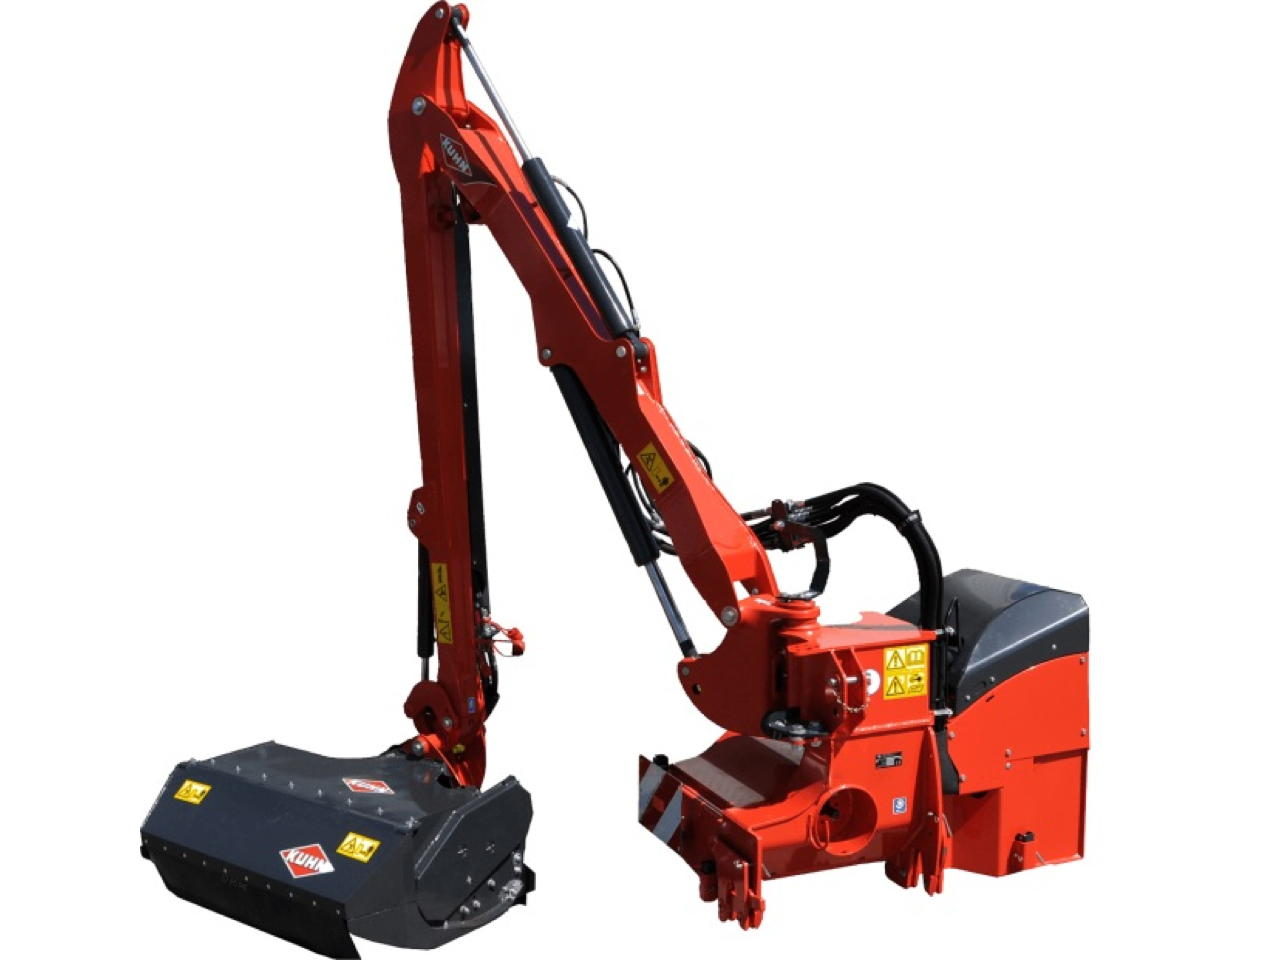 Kuhn Pro-Longer GII Pro-Longer GII 5683 SP